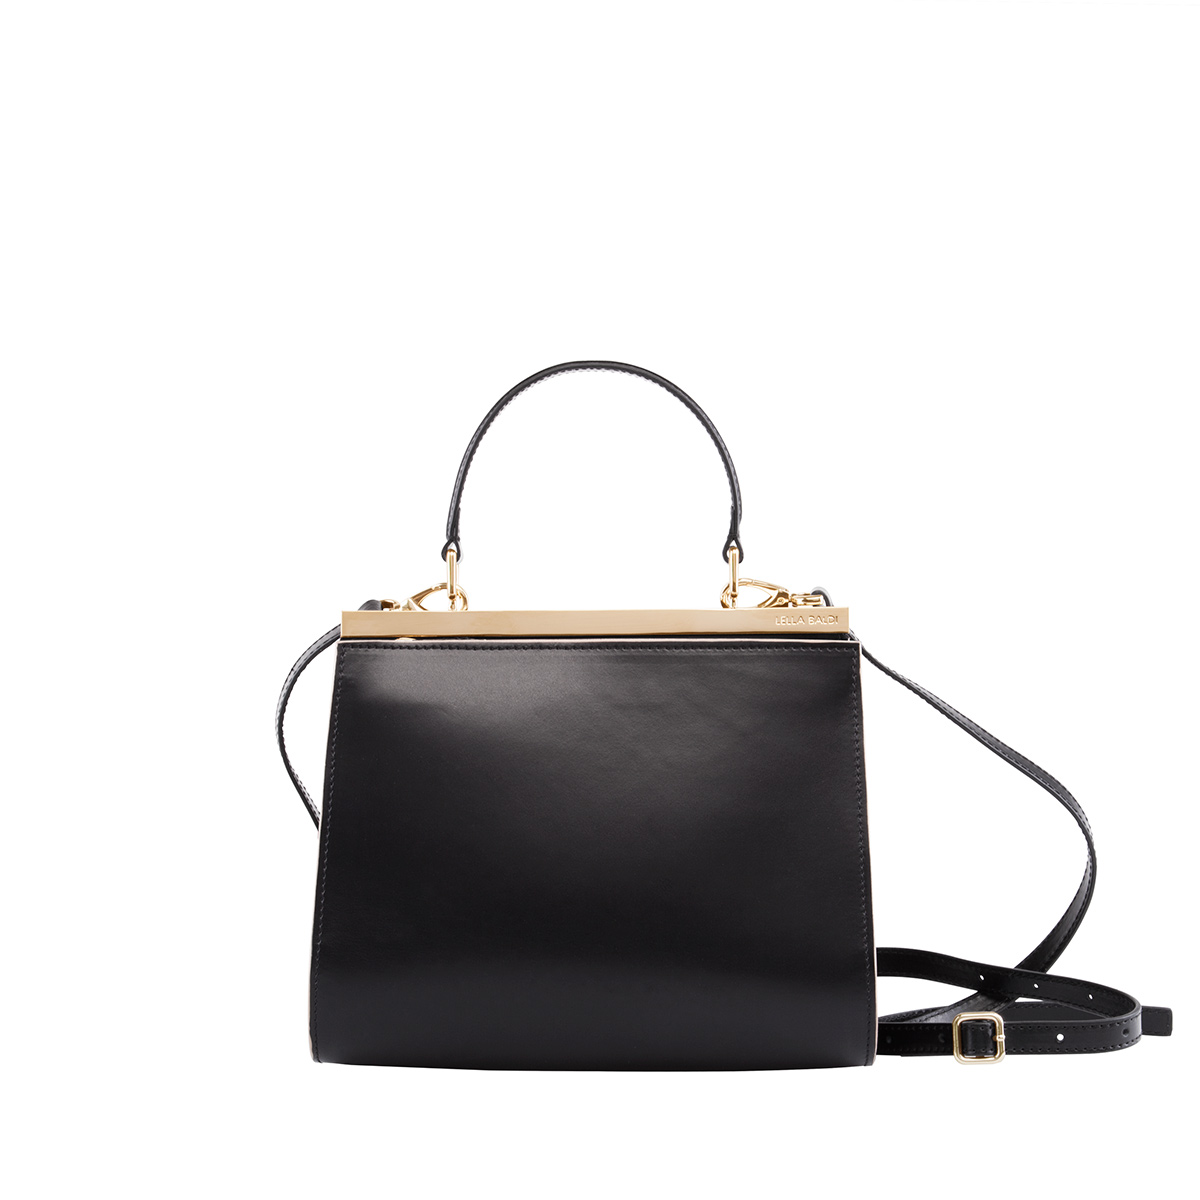 Wavy Bag Shoulder, Black-Leather